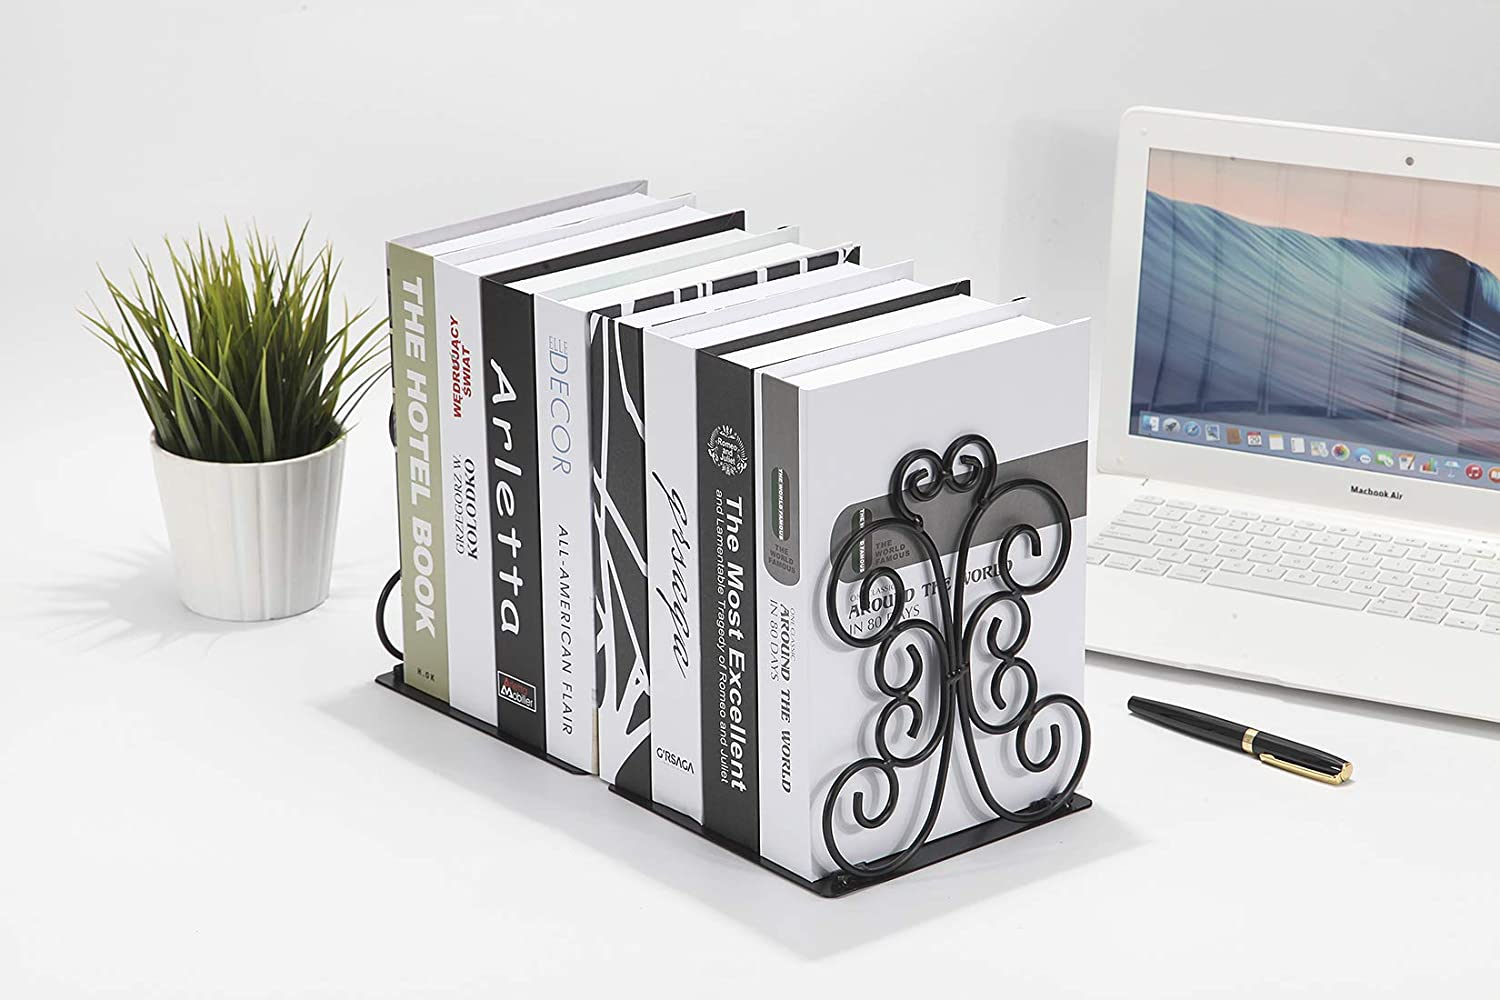 Book Supports with Anti Slip Base Schools L 12 x W 12.6 x H 18.7 cm Nursery and Library Metal Bookends for Children 3 Pairs Bookends Living Room Book Stopper for Shelves - Office